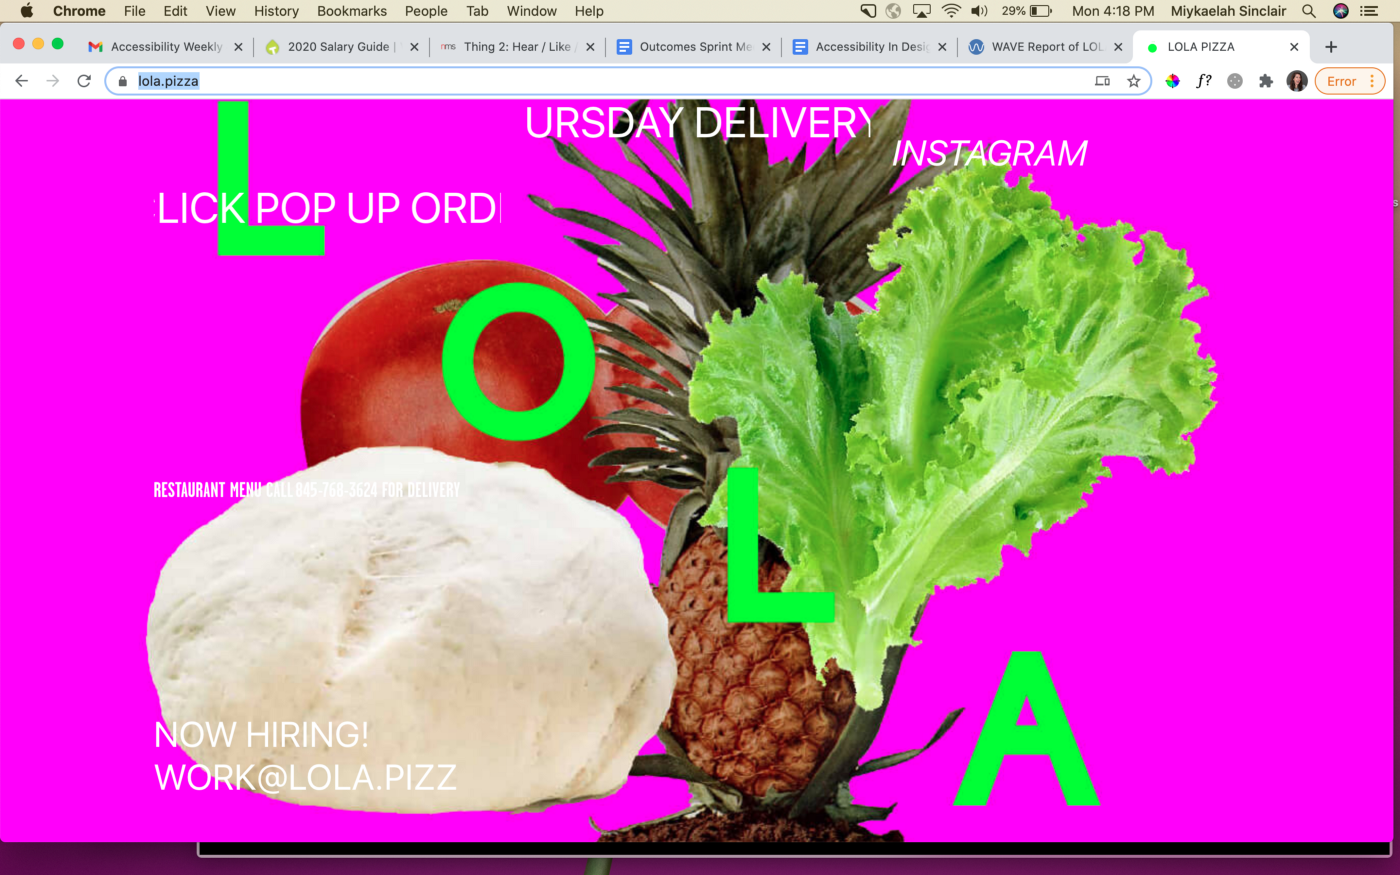 Lola Pizzaria's website homepage which includes overlapping images of pineapples, lettuce, pizza dough and tomatoes